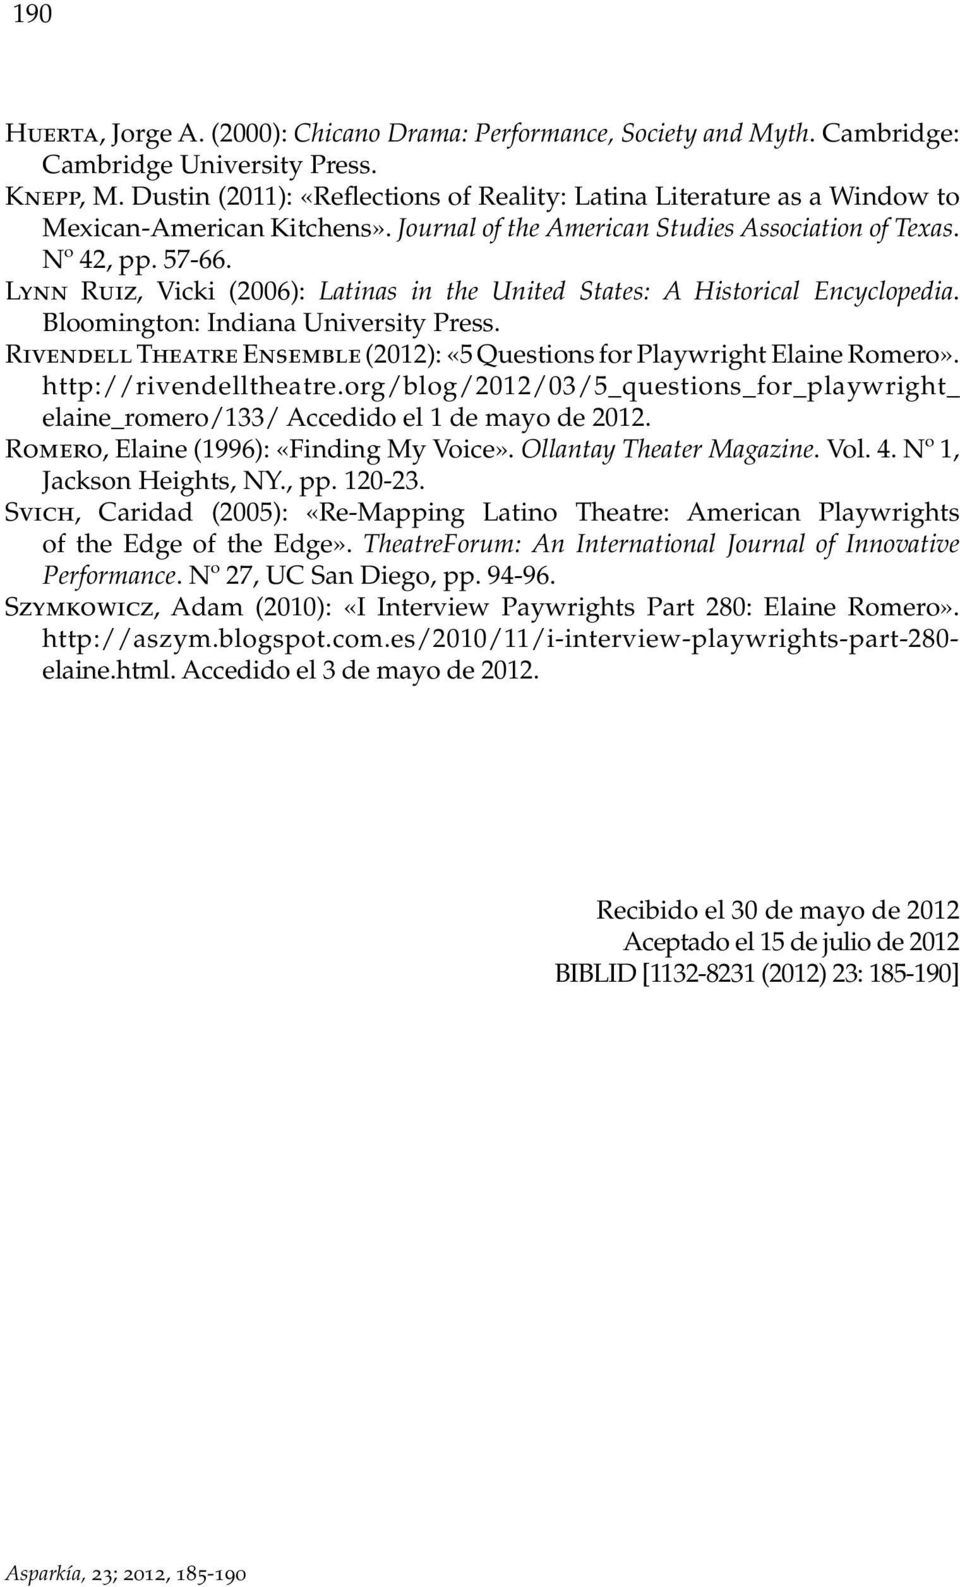 Lynn Ruiz, Vicki (2006): Latinas in the United States: A Historical Encyclopedia. Bloomington: Indiana University Press. Rivendell Theatre Ensemble (2012): «5 Questions for Playwright Elaine Romero».